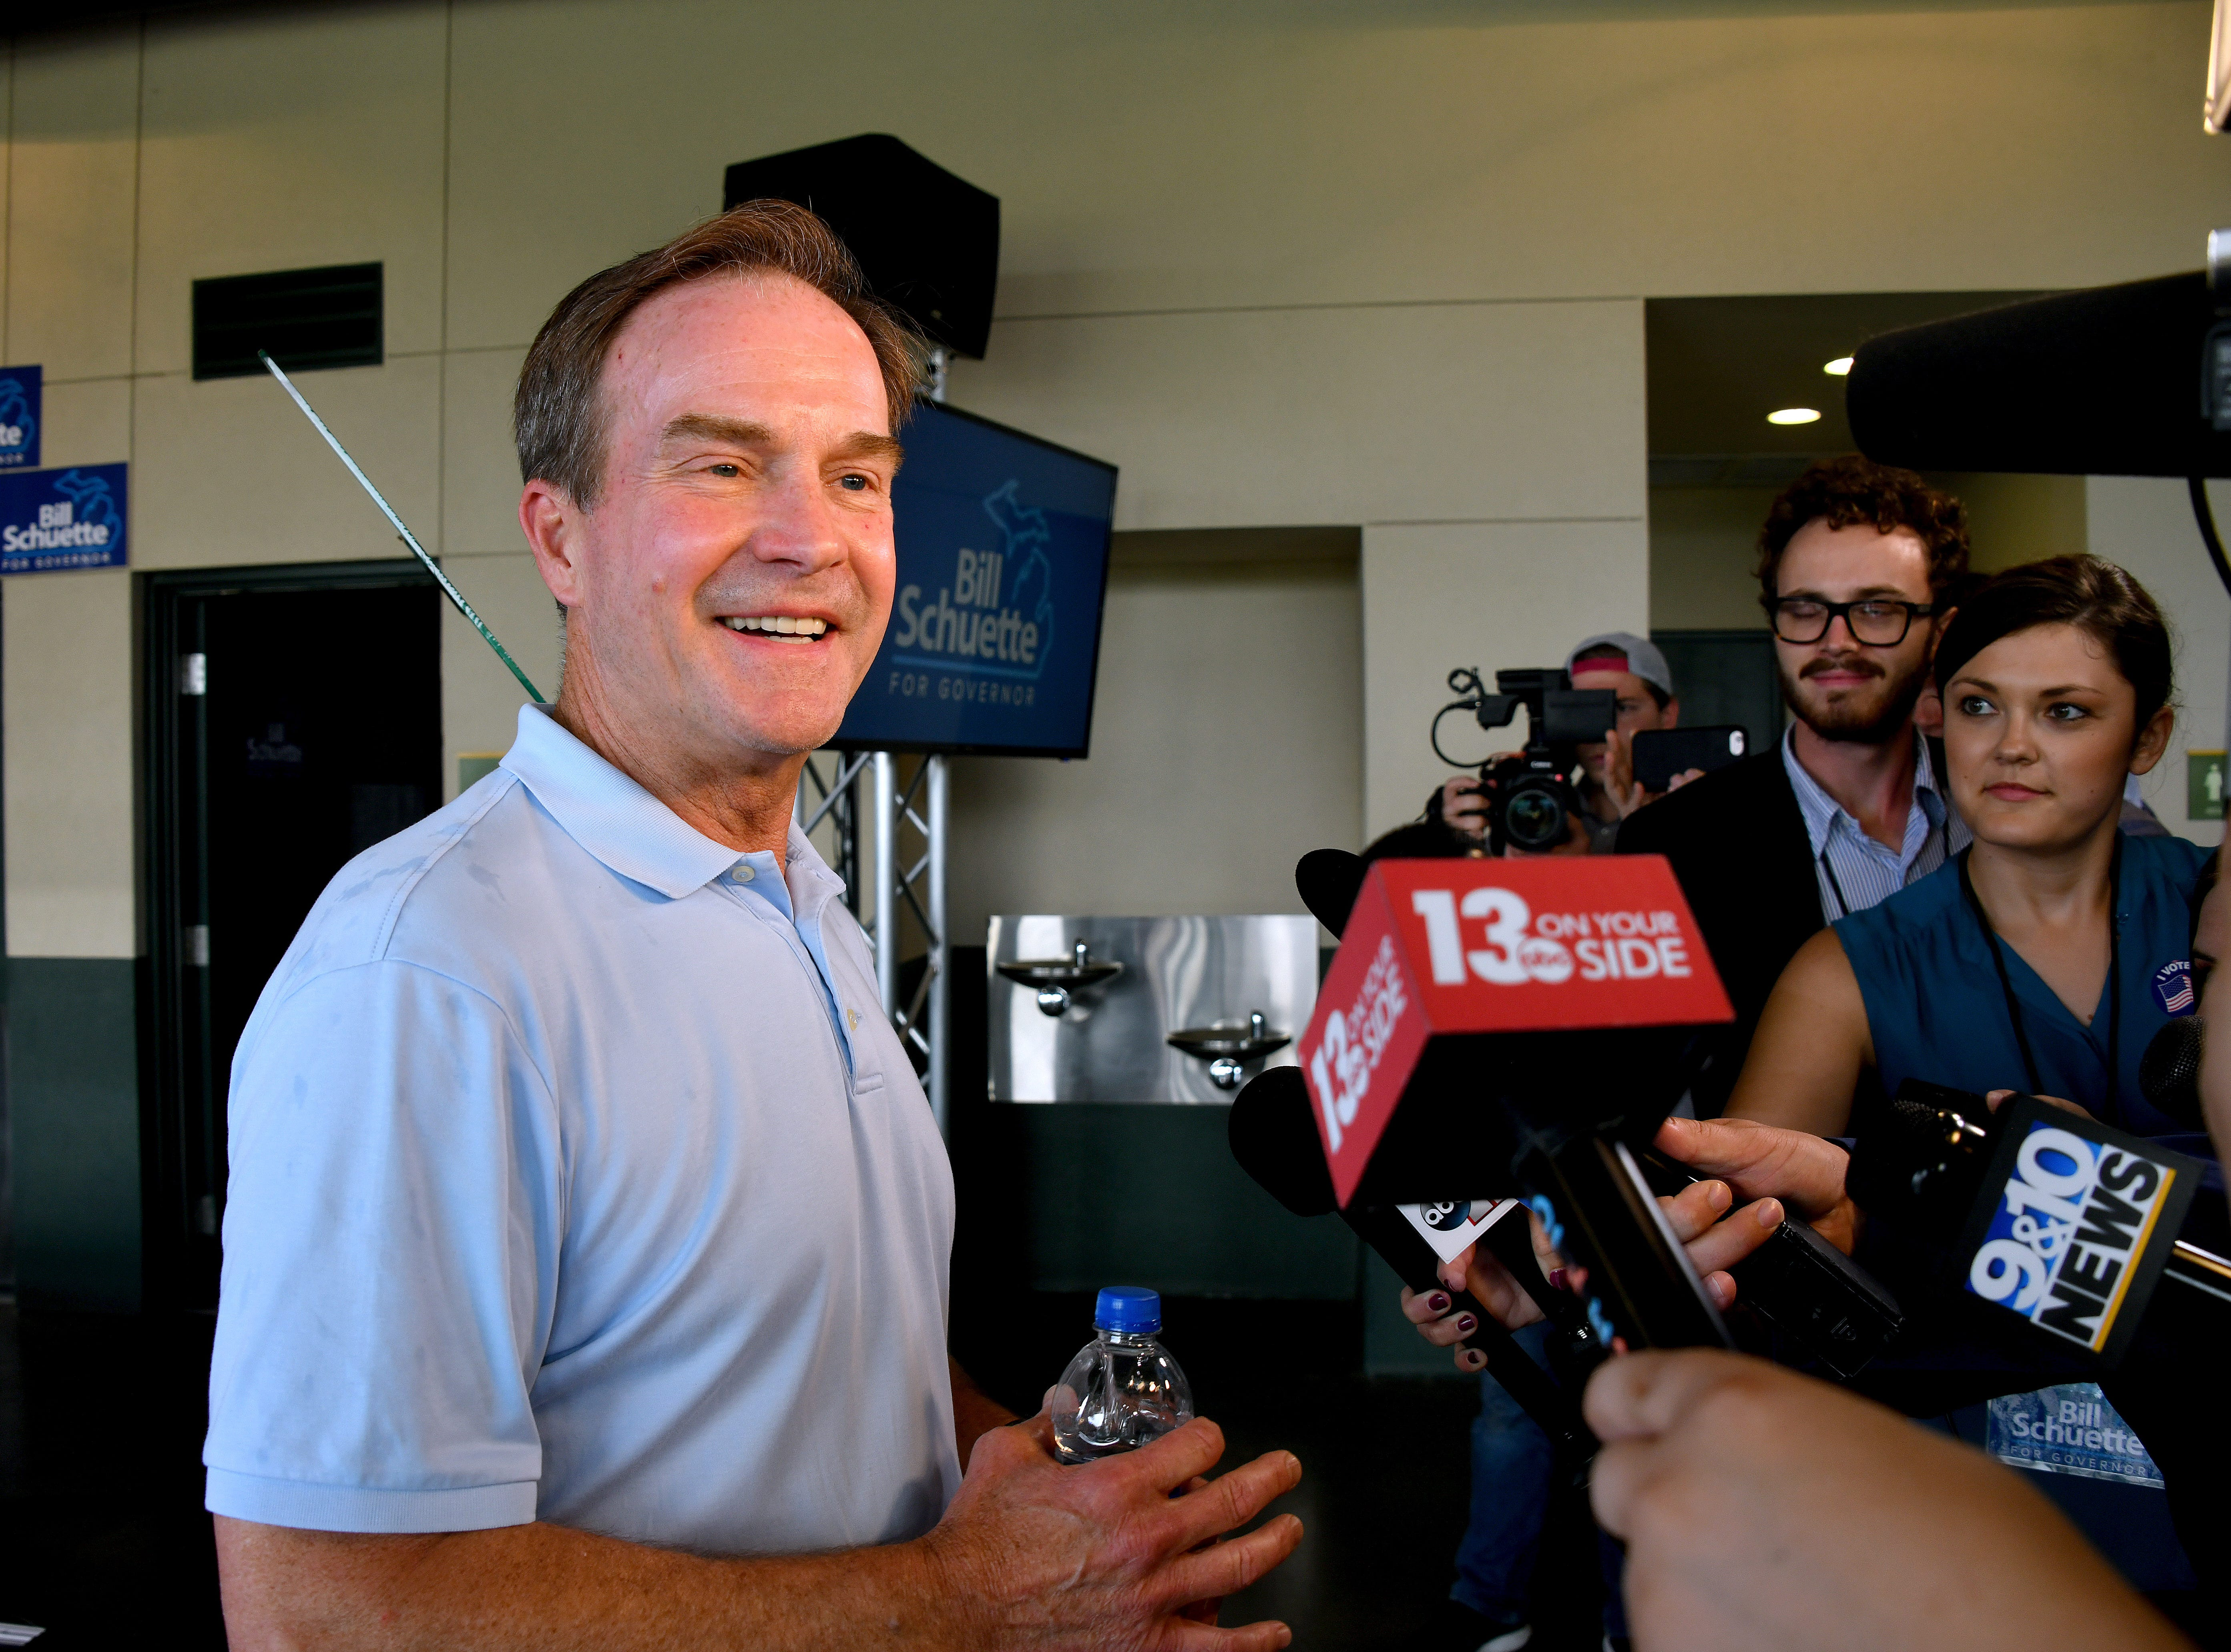 Michigan Attorney General Bill Schuette faces the media scrum just hours before the polls close on primary election day, Aug 7, 2018.  Schuette's post-election event is being held at Dow Diamond, the home of Midland's minor league baseball team.